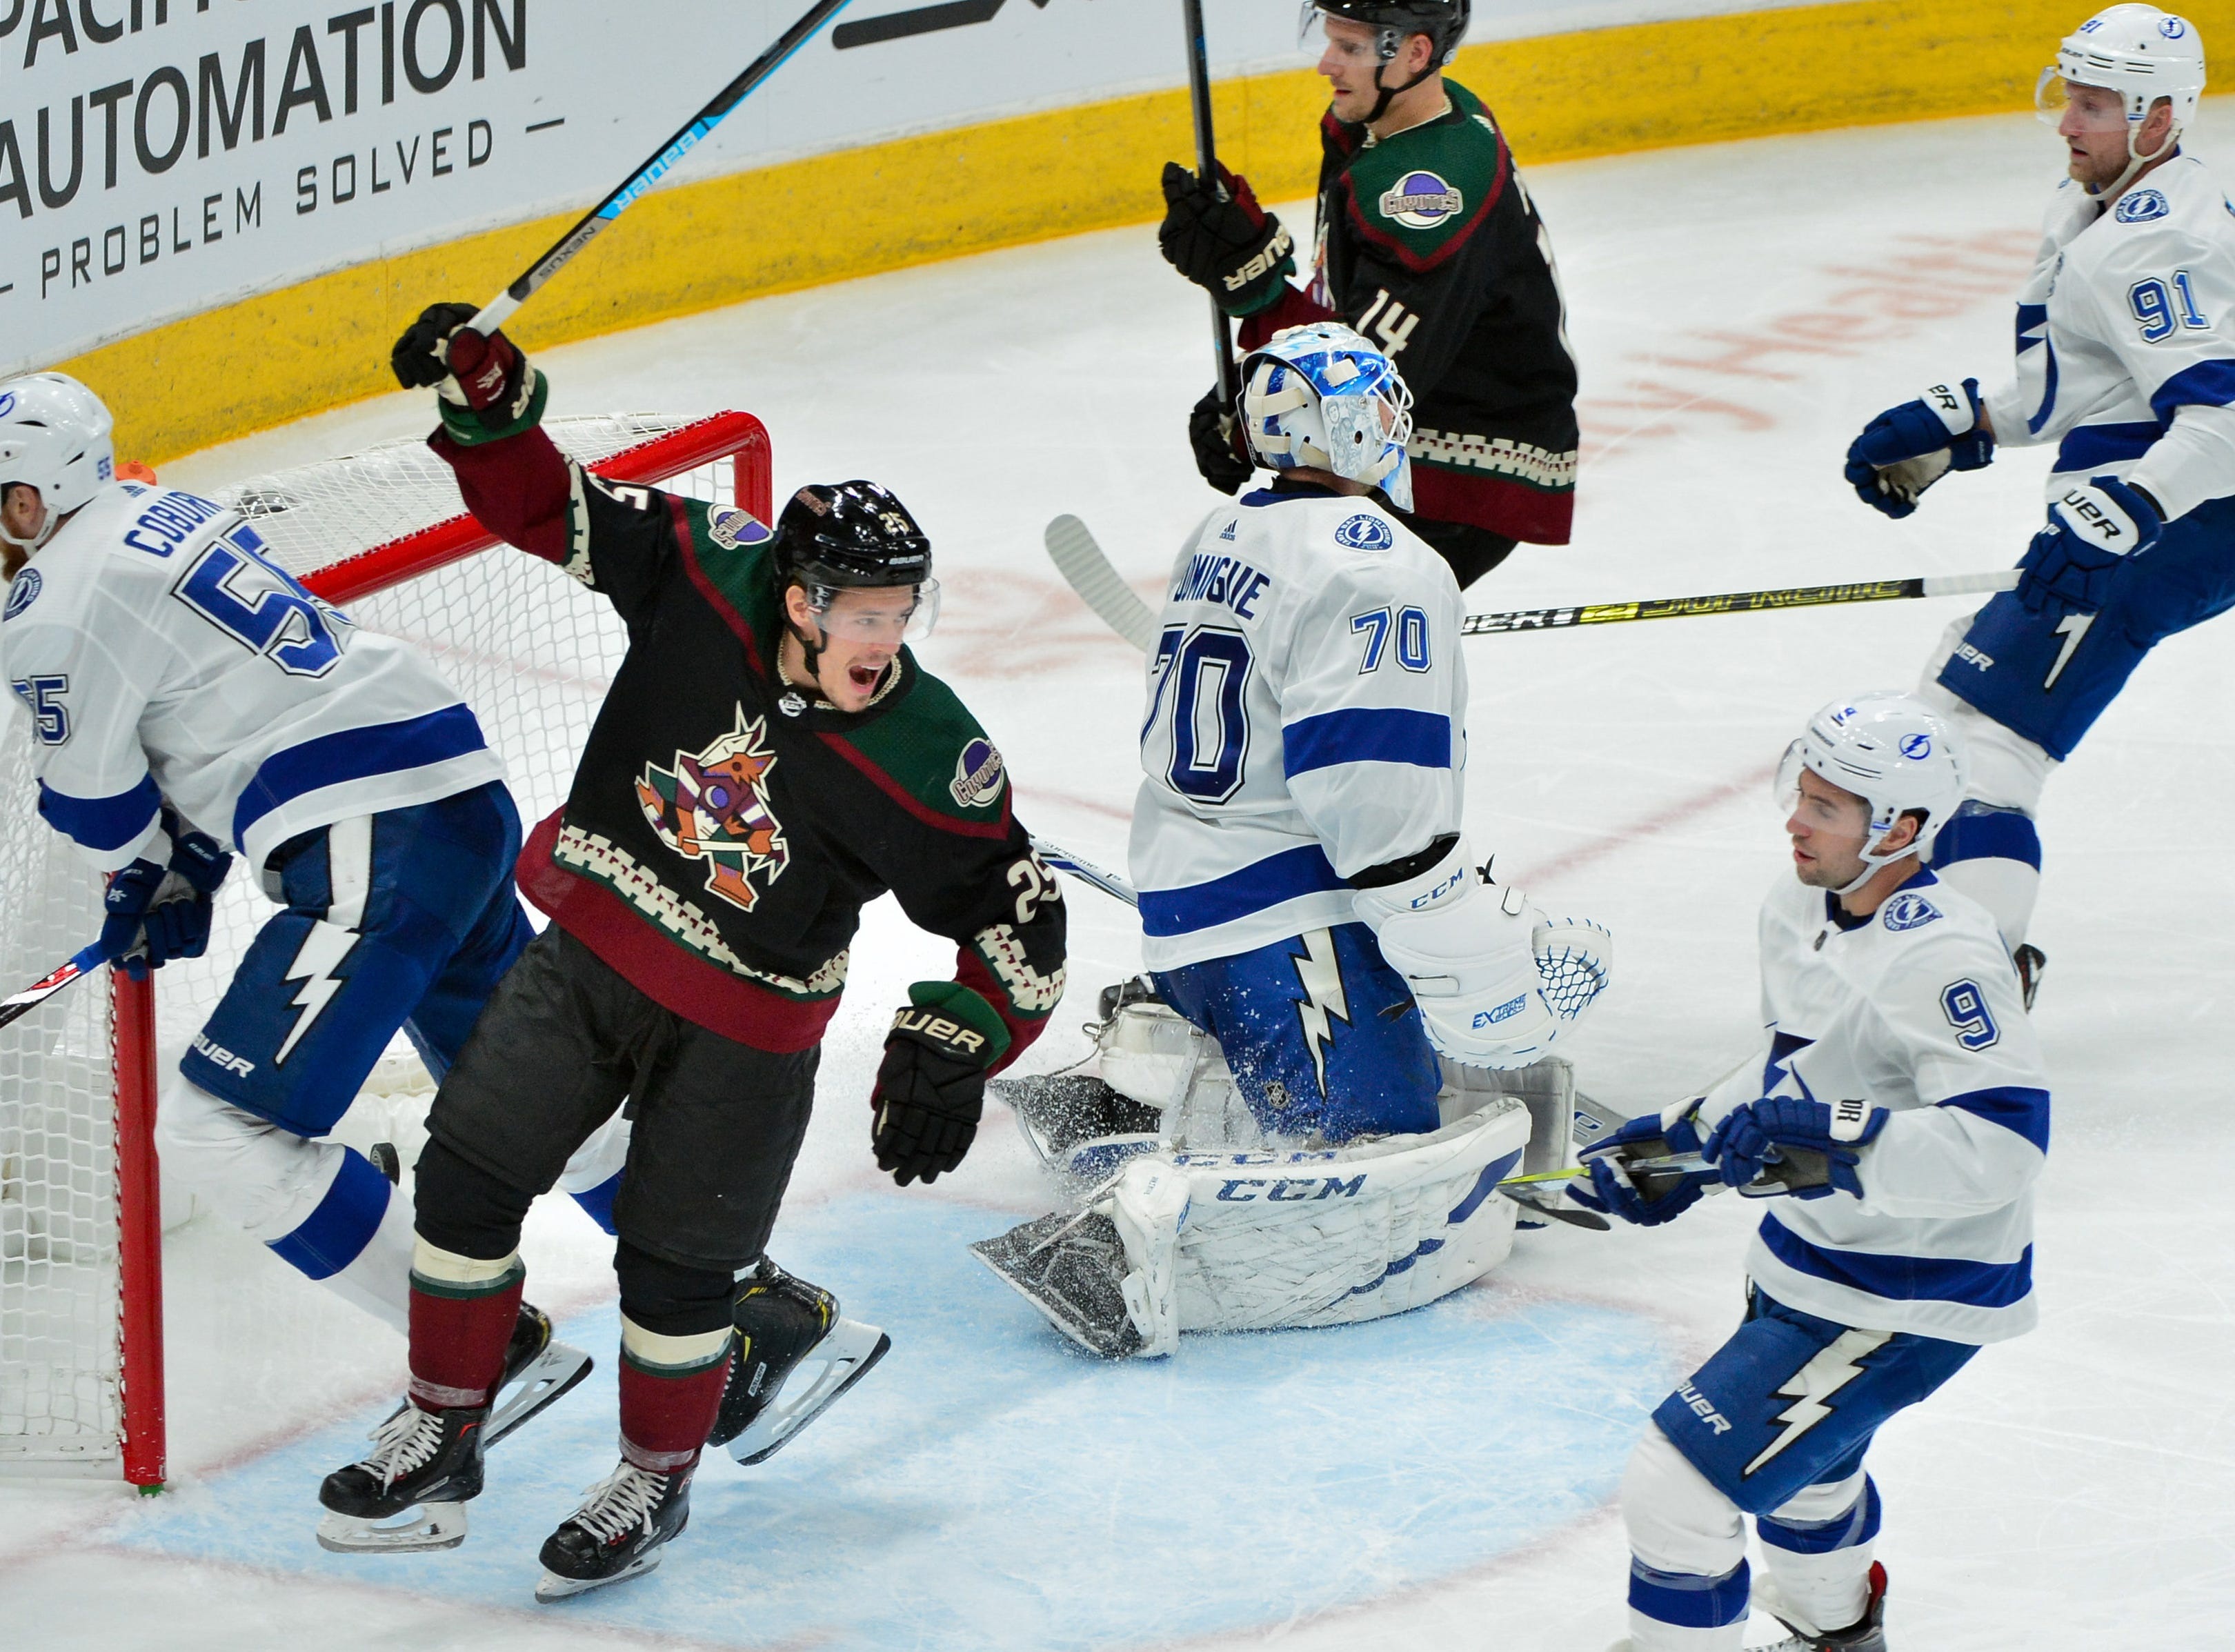 Oct. 27: Arizona Coyotes center Nick Cousins (25) celebrates a goal by center Vinnie Hinostroza during the second period against the Tampa Bay Lightning at Gila River Arena.